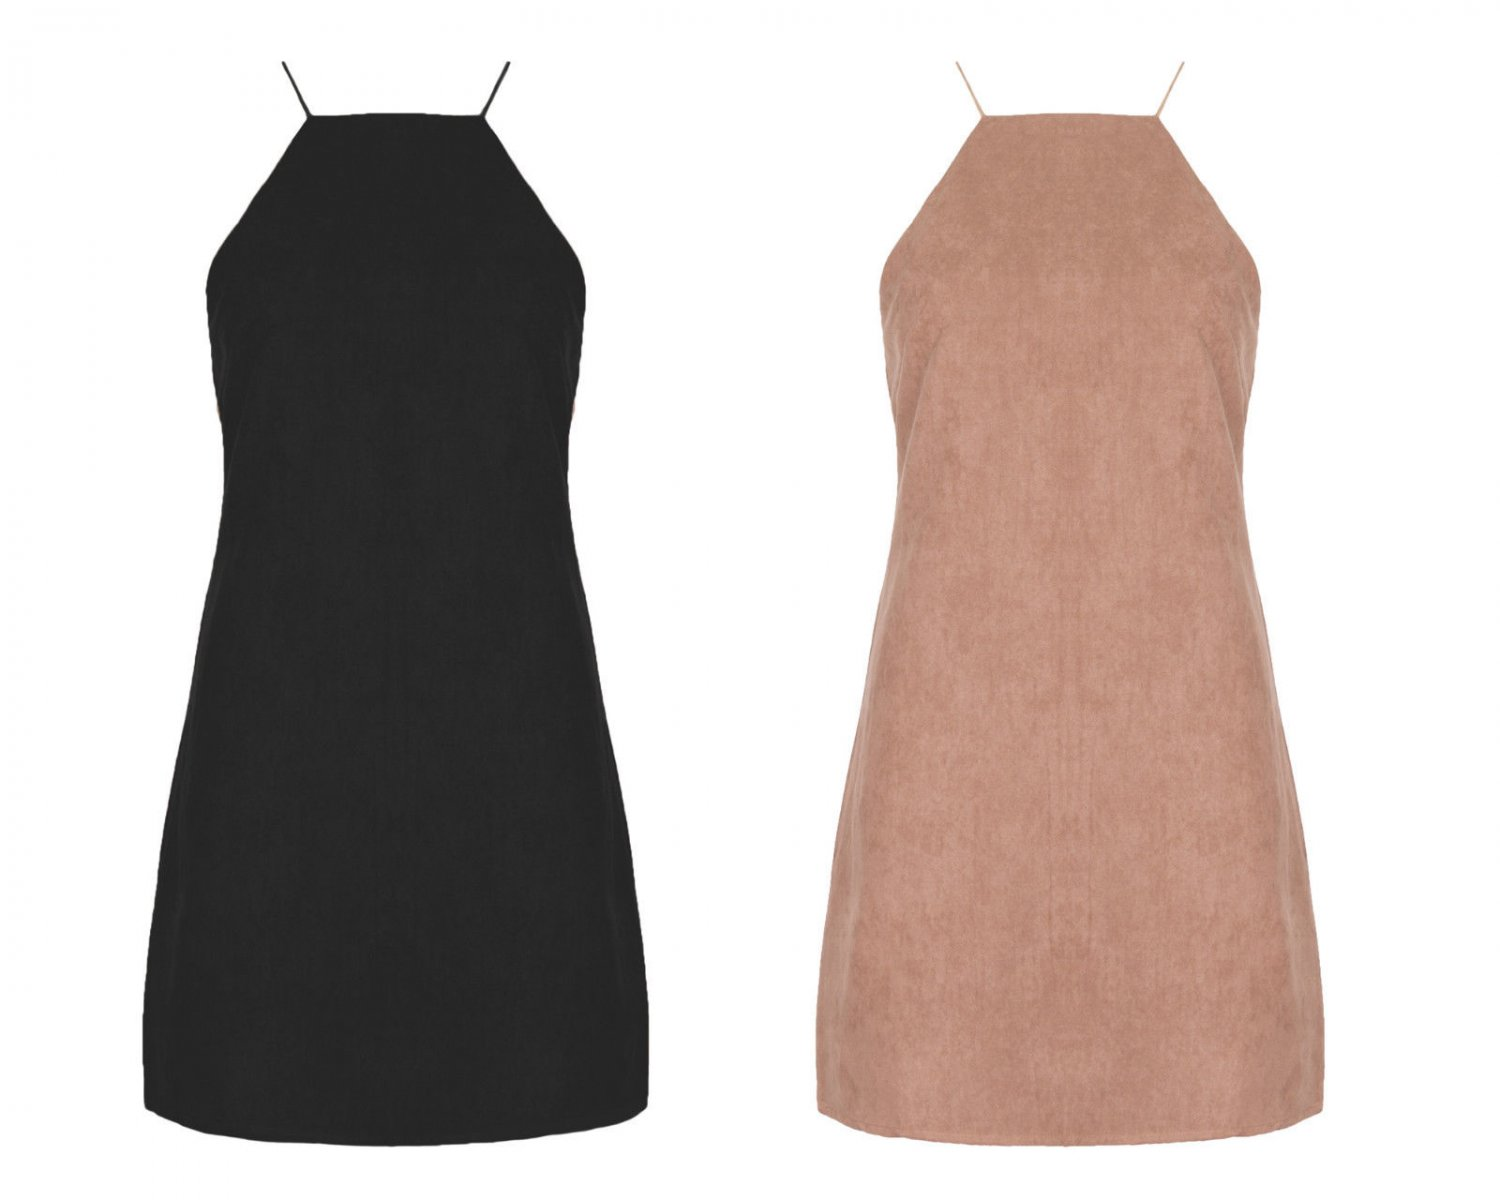 New Women Suede Mini Sexy Dress Rouleaux Straps Tunic Pinafore A Line UK Size 14 Black